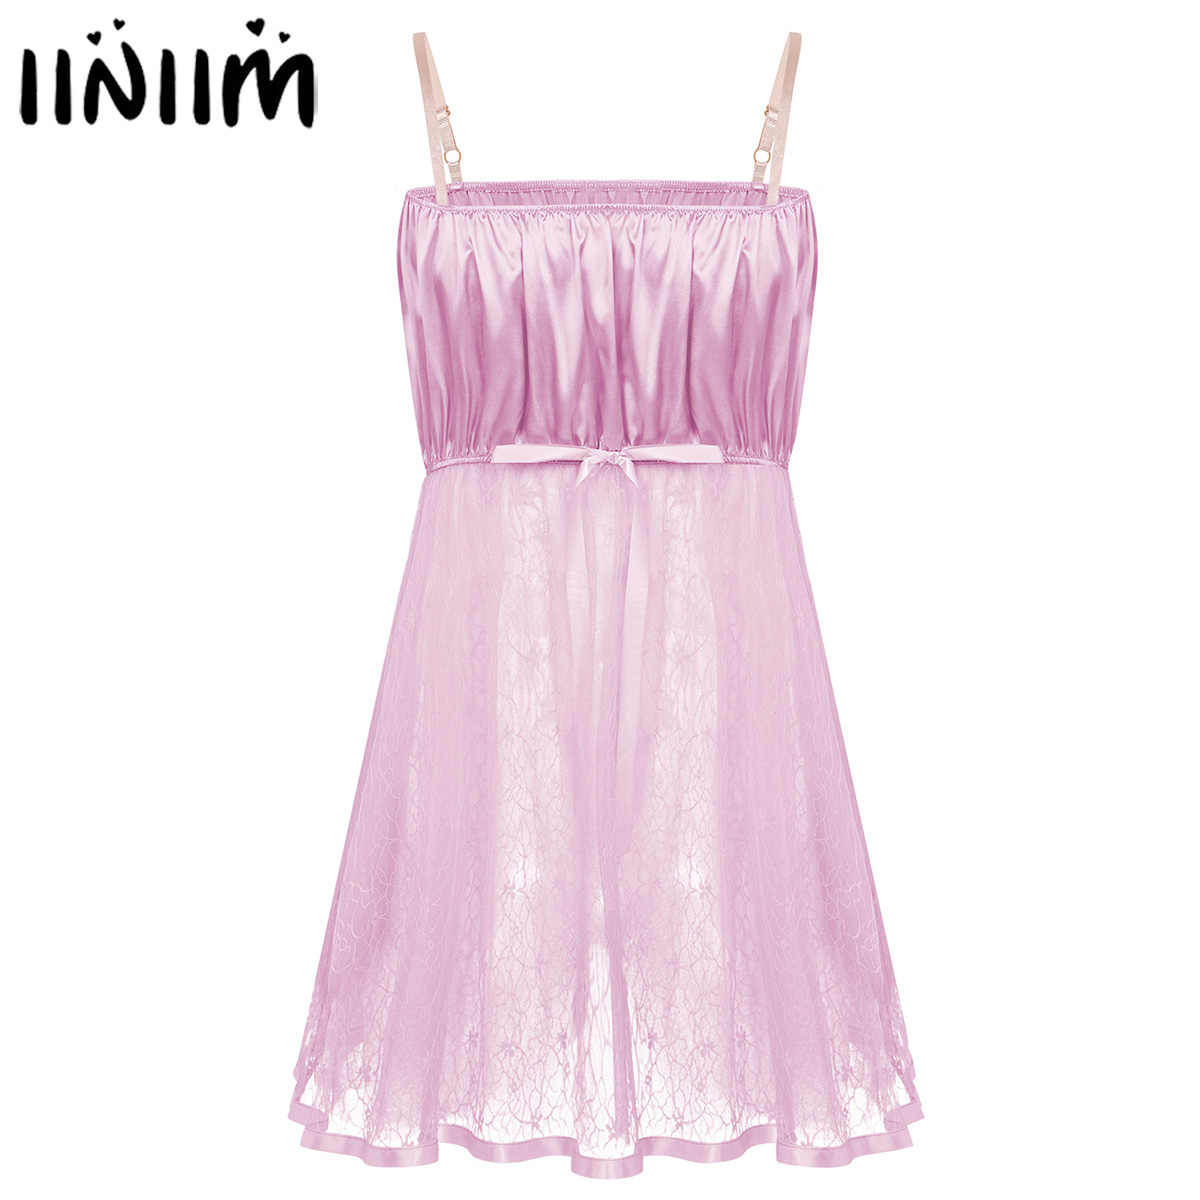 Men Exotic Apparel Sissy Satin Lingerie Sexy Transparent Lace Babydoll Dress Nightwear Male Gay Porno Underwear Clubwear Costume